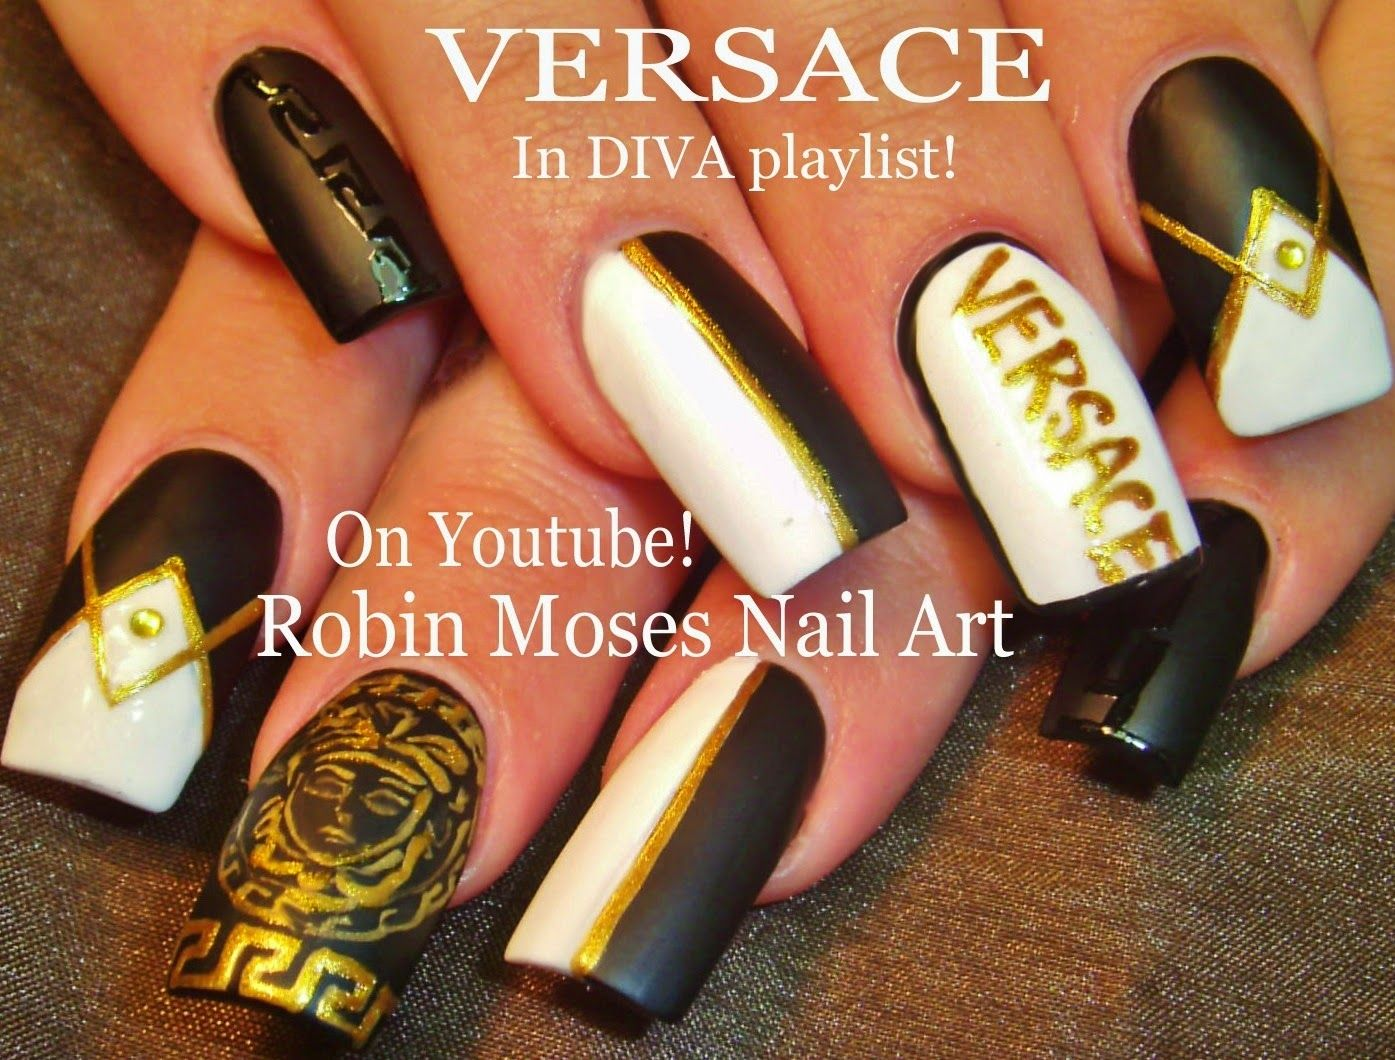 Versace Nails Versace Nail Art Gucci Nails Michael Kors Nails